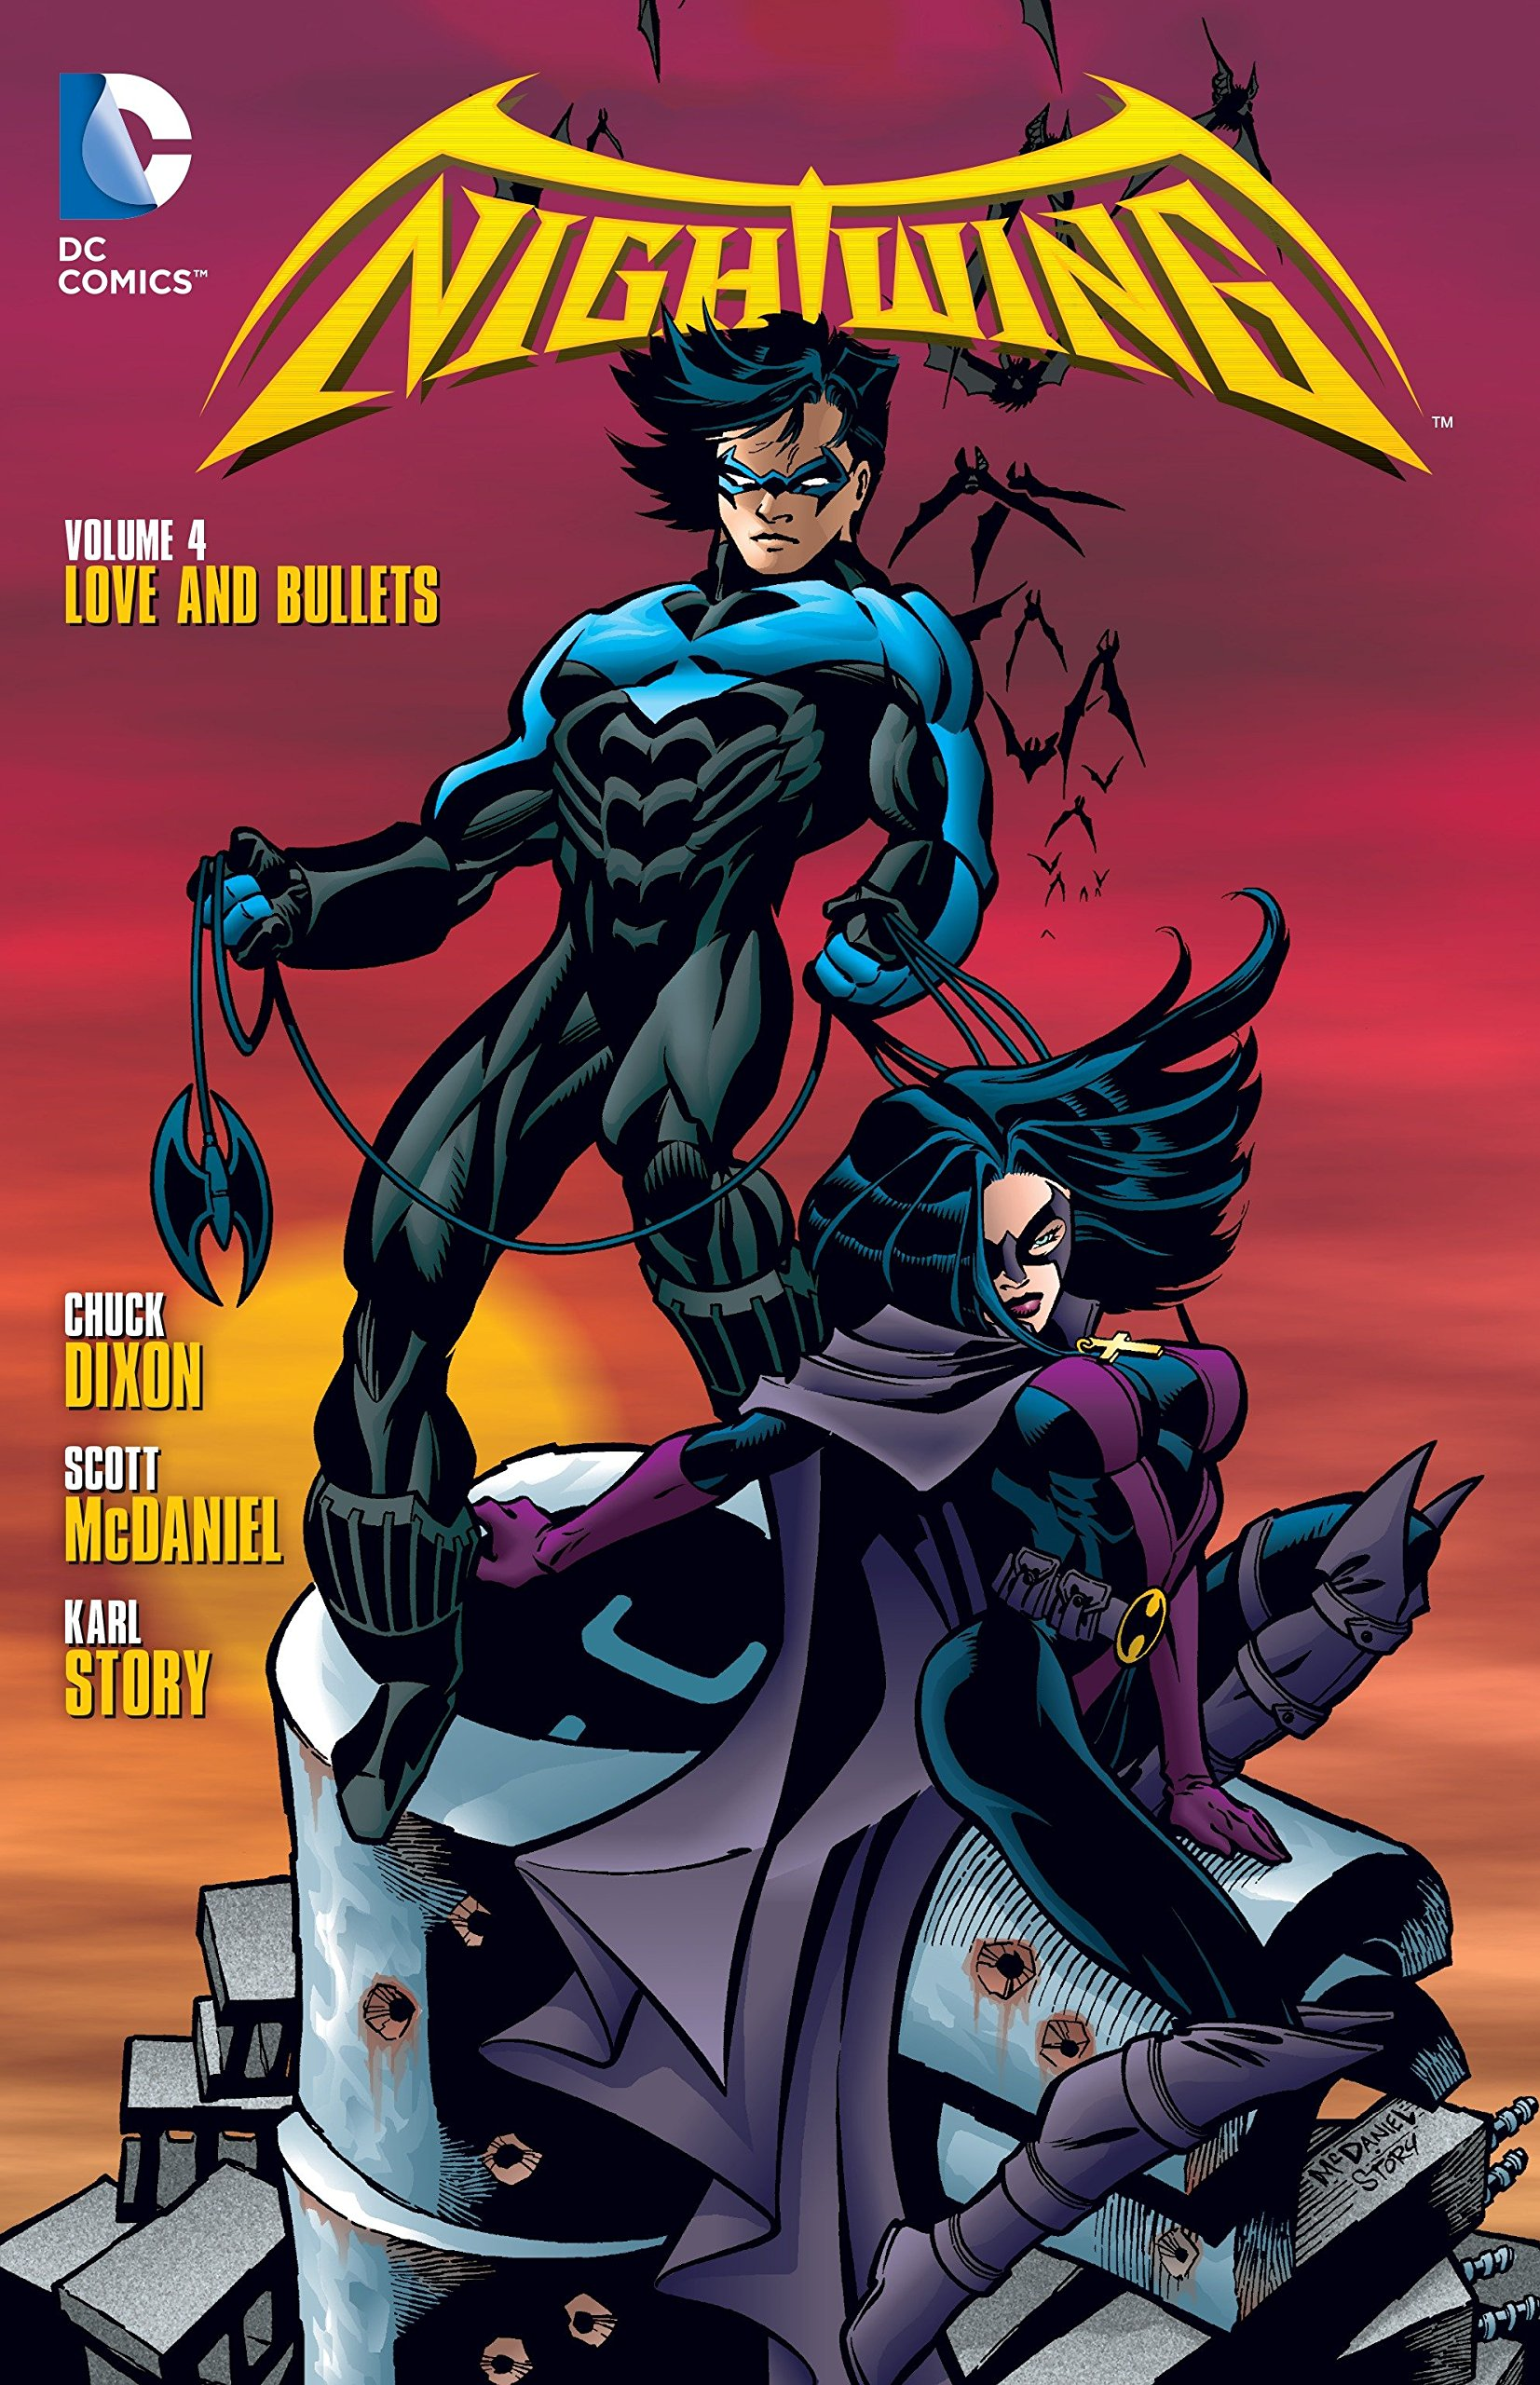 Nightwing Vol. 4: Love and Bullets by DC Comics